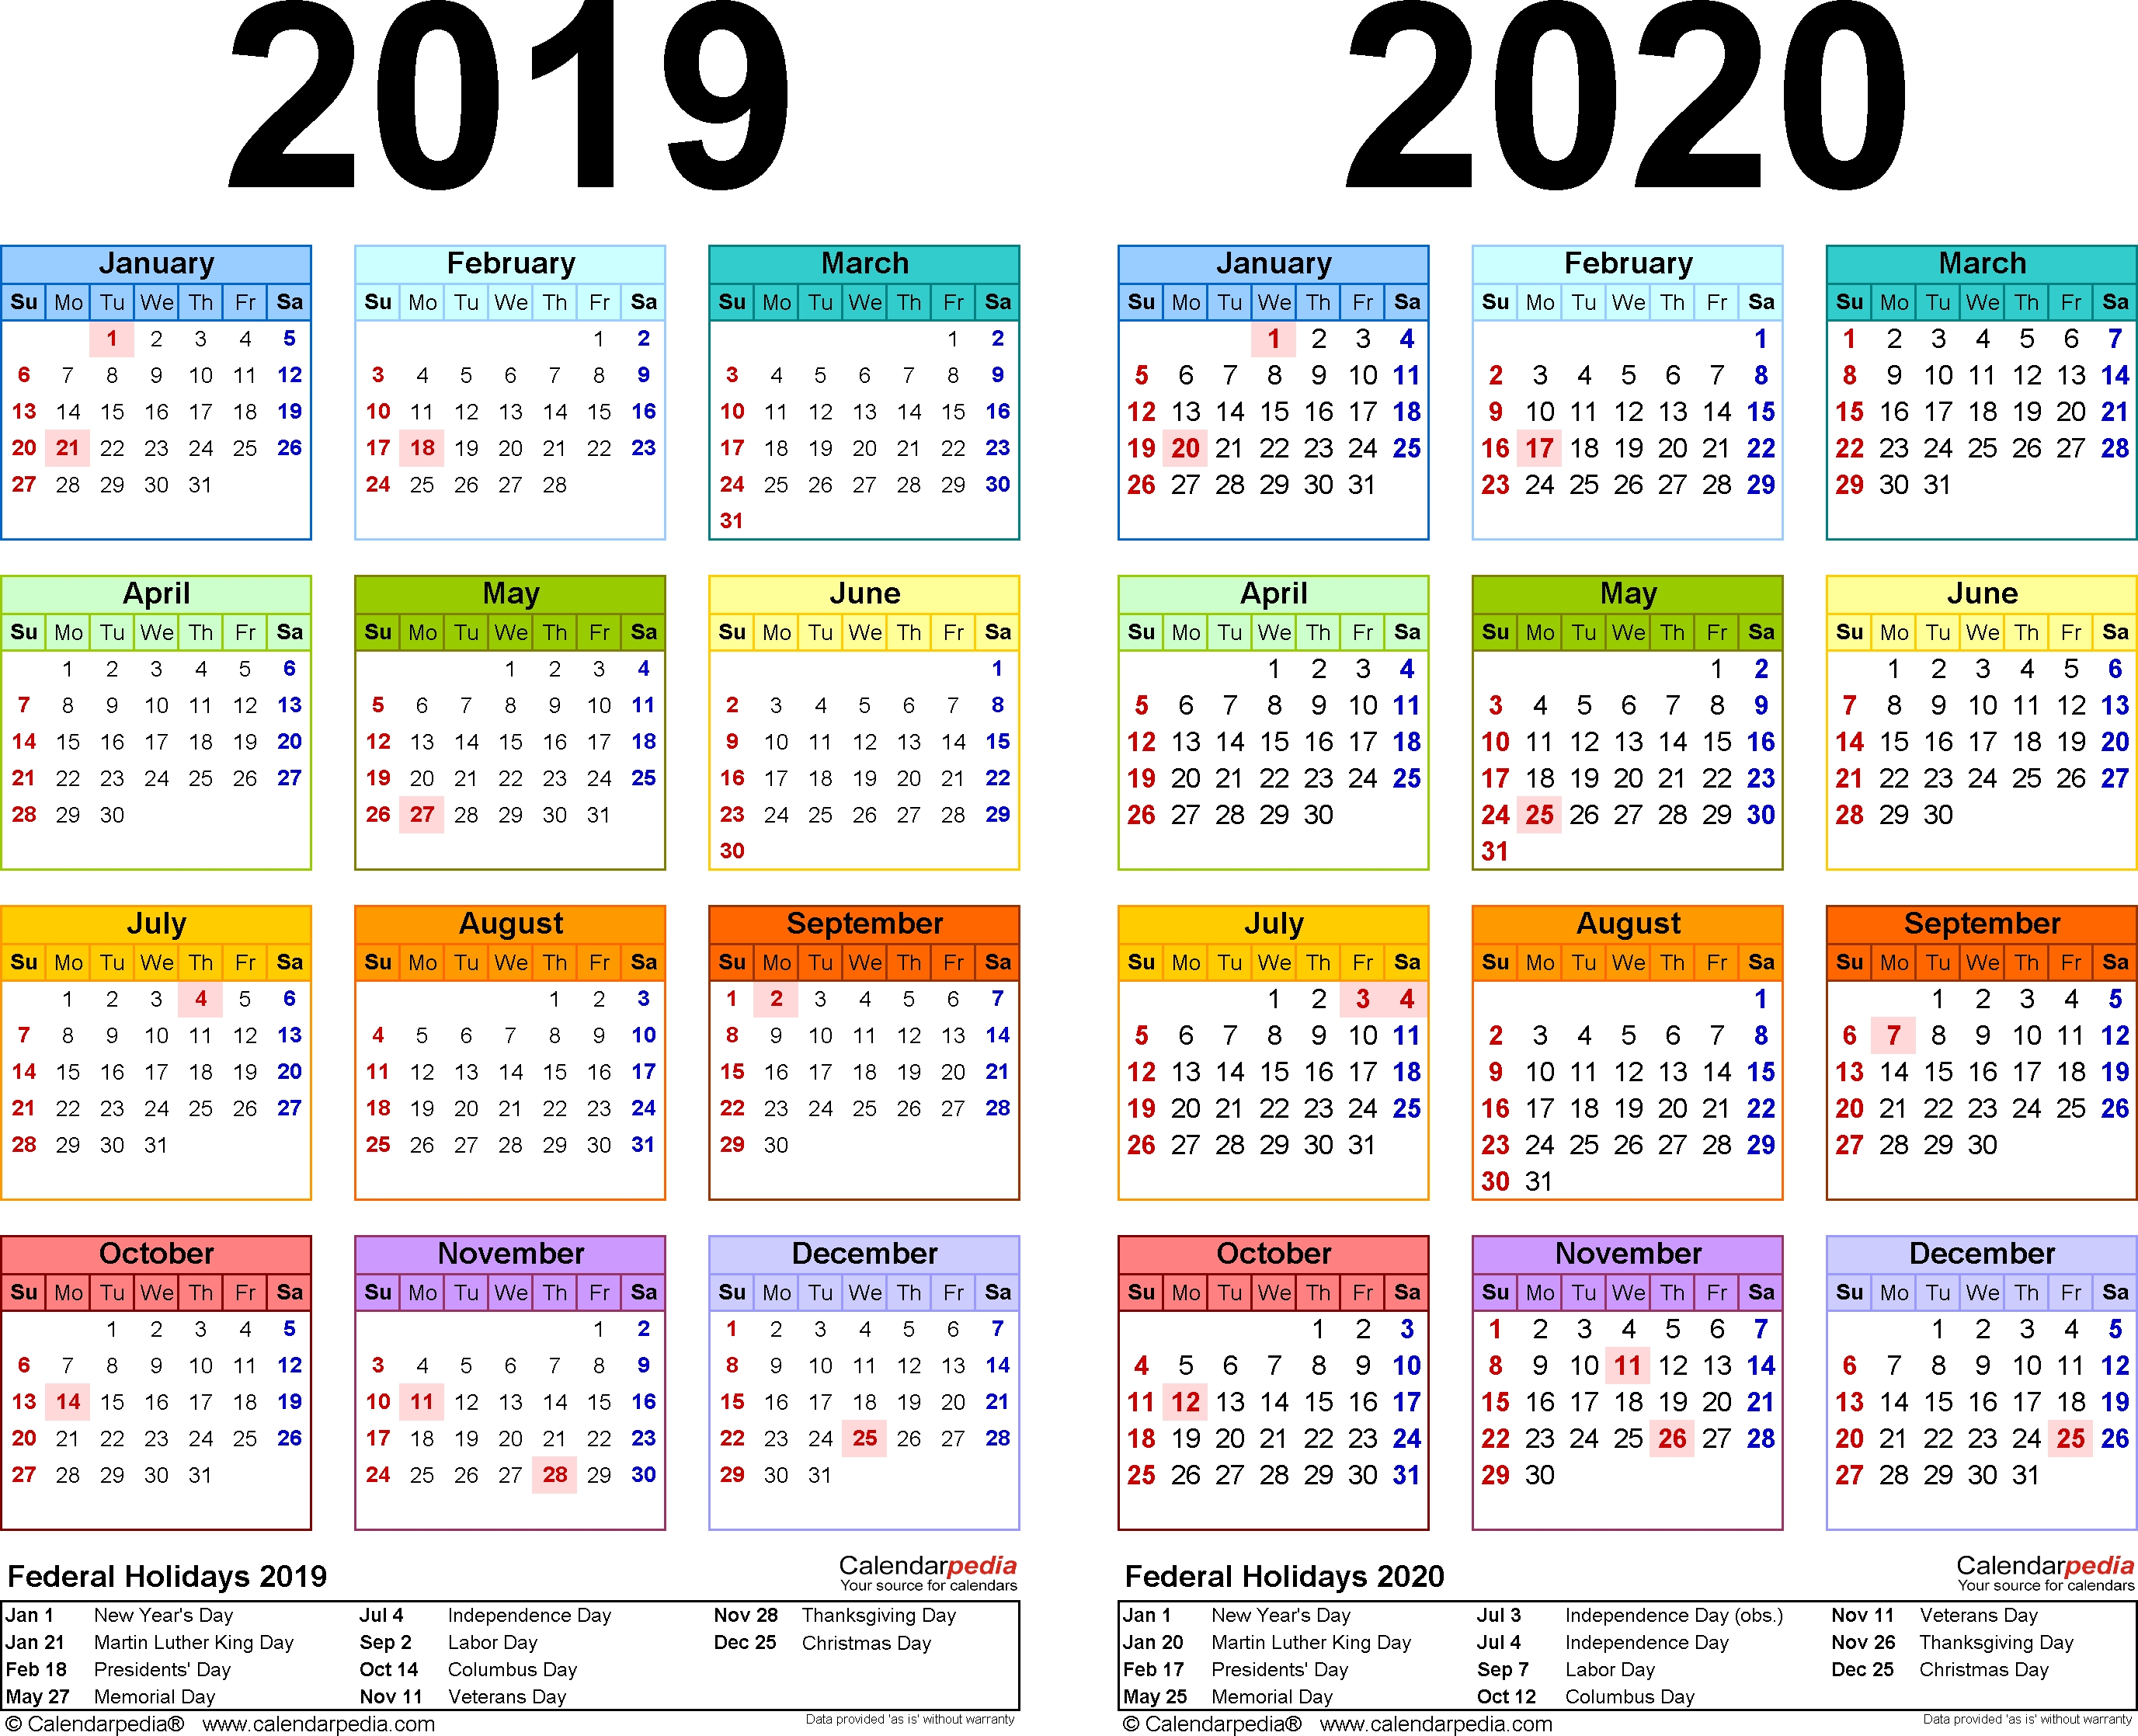 2019-2020 Calendar - Free Printable Two-Year Pdf Calendars regarding 2019-2020 Large Calandar